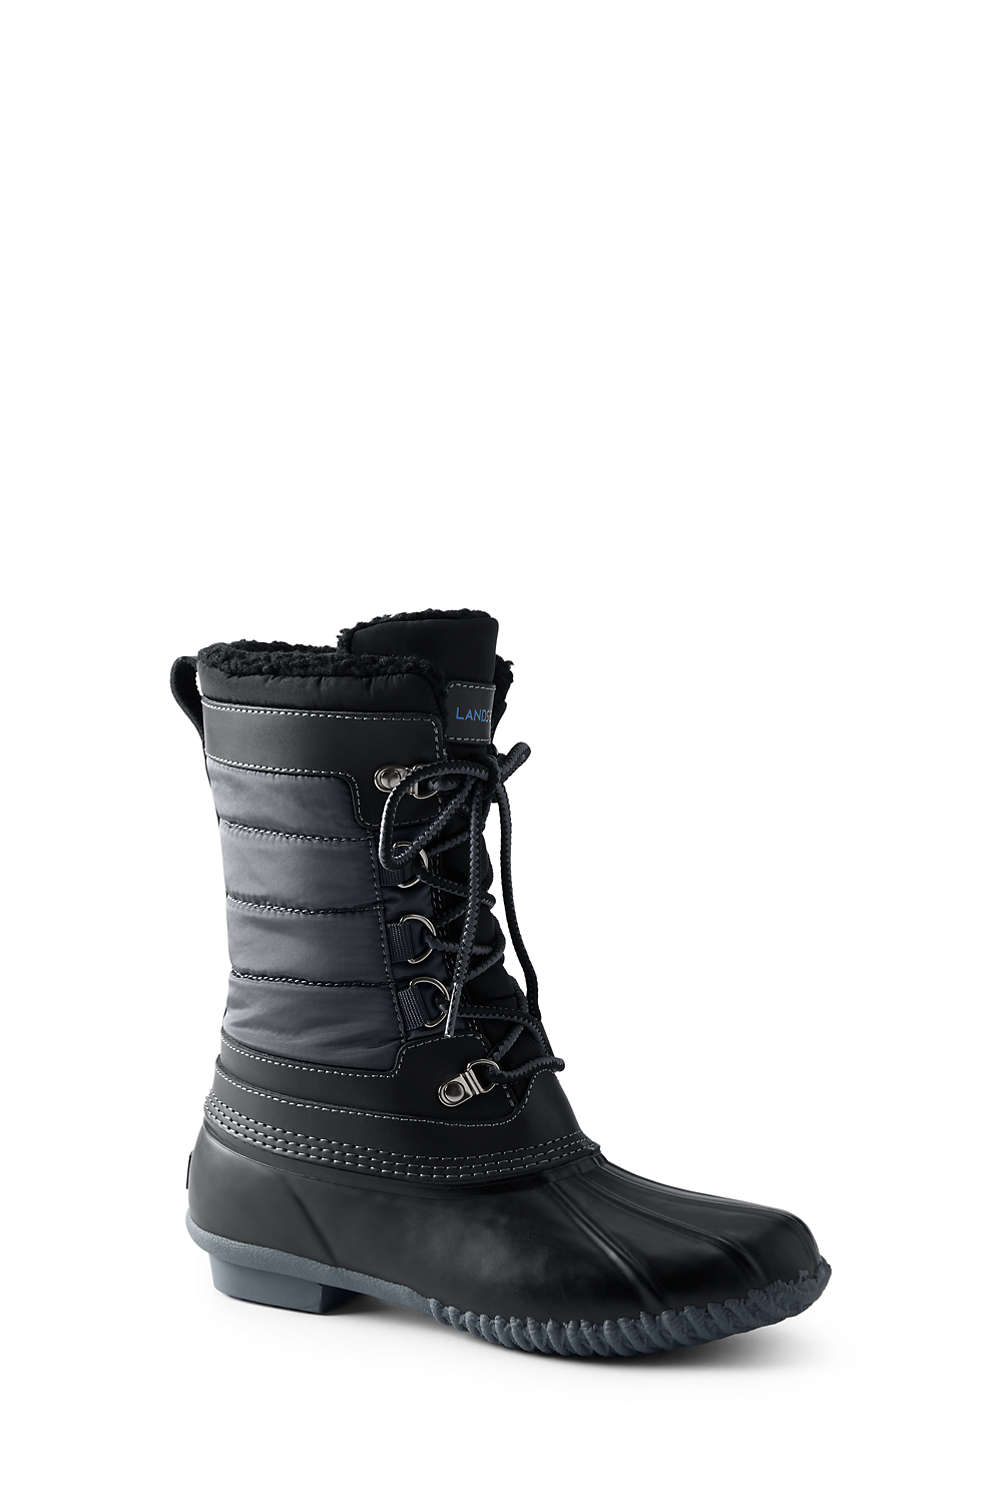 33ddb00f5 Women's Lined Winter Duck Boots from Lands' End